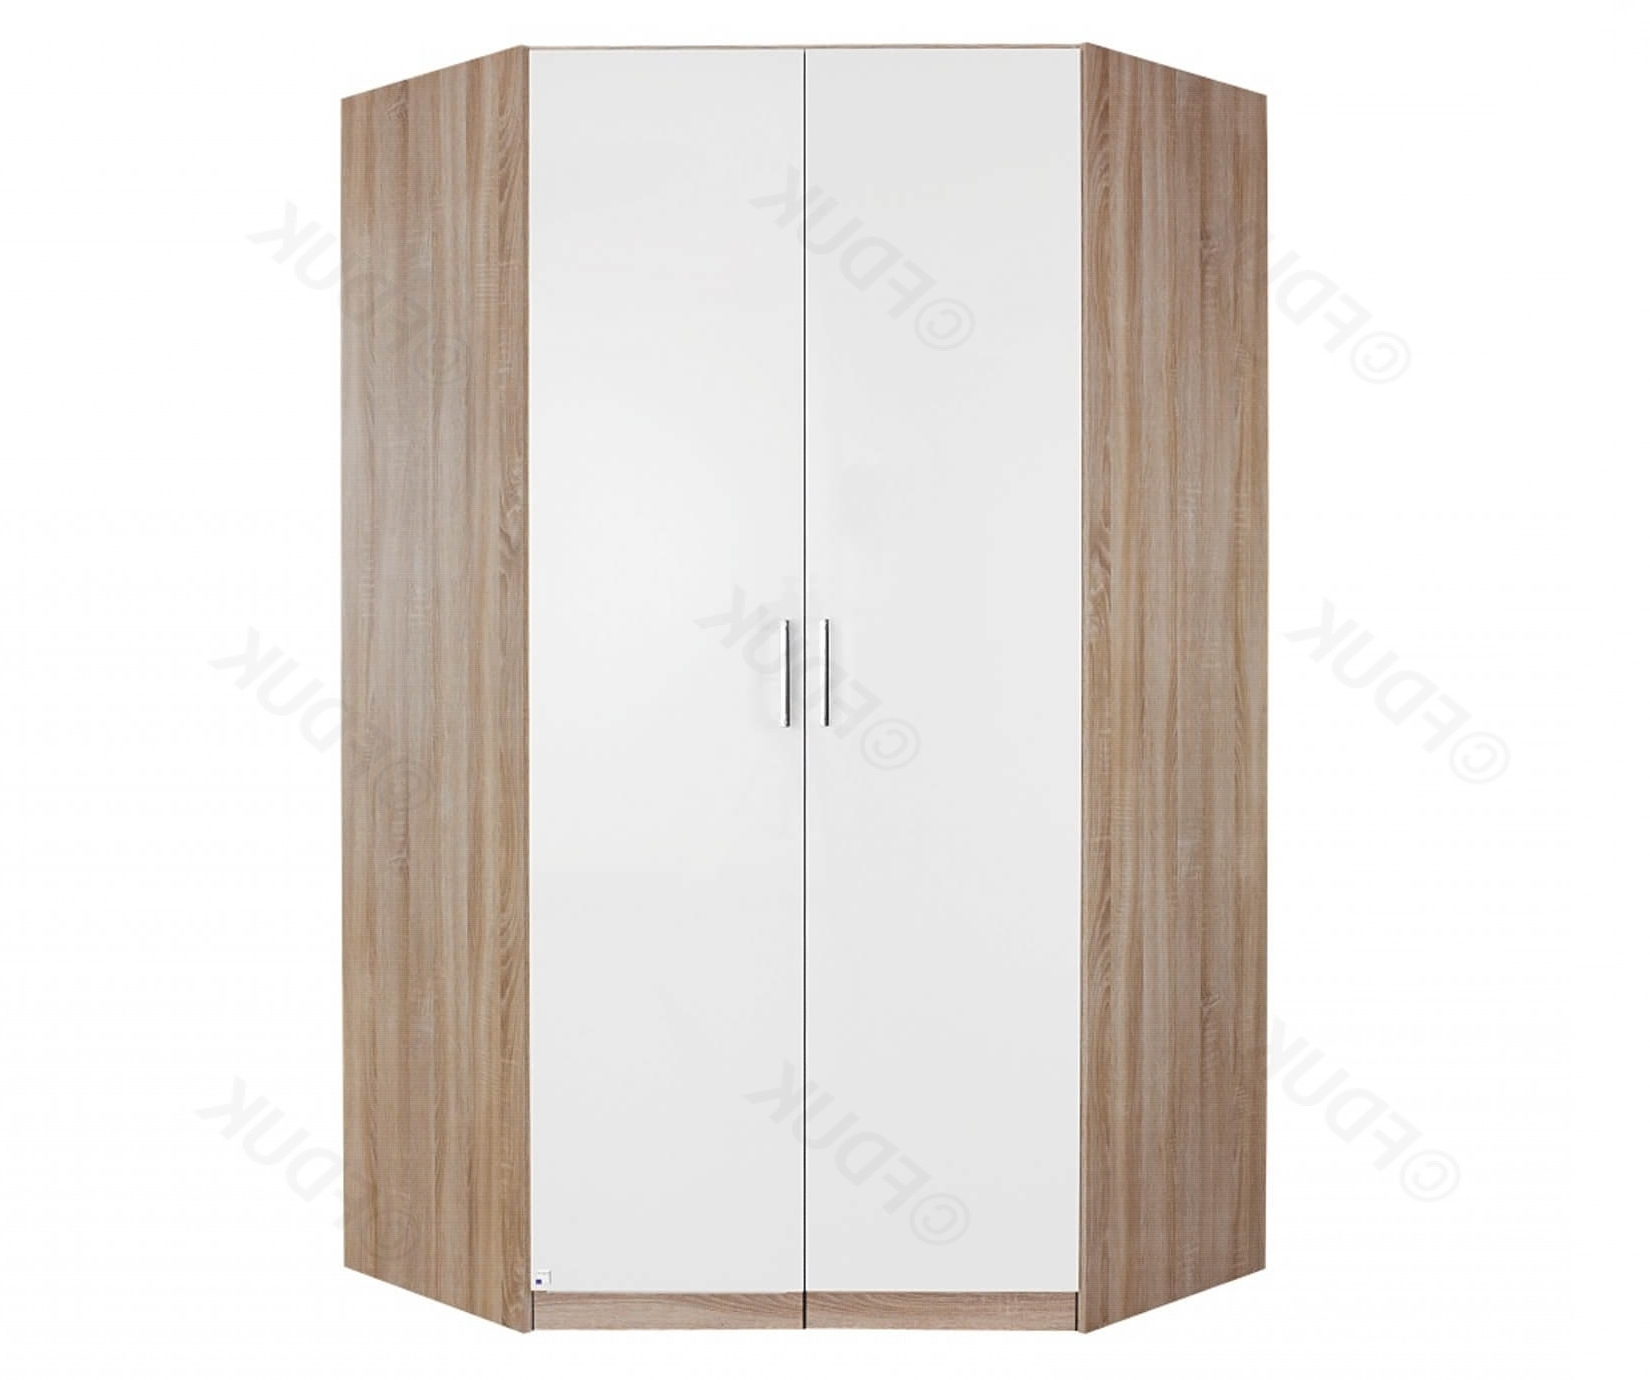 Samos 2 Door Corner Wardrobe Intended For 2 Door Corner Wardrobes (View 14 of 15)